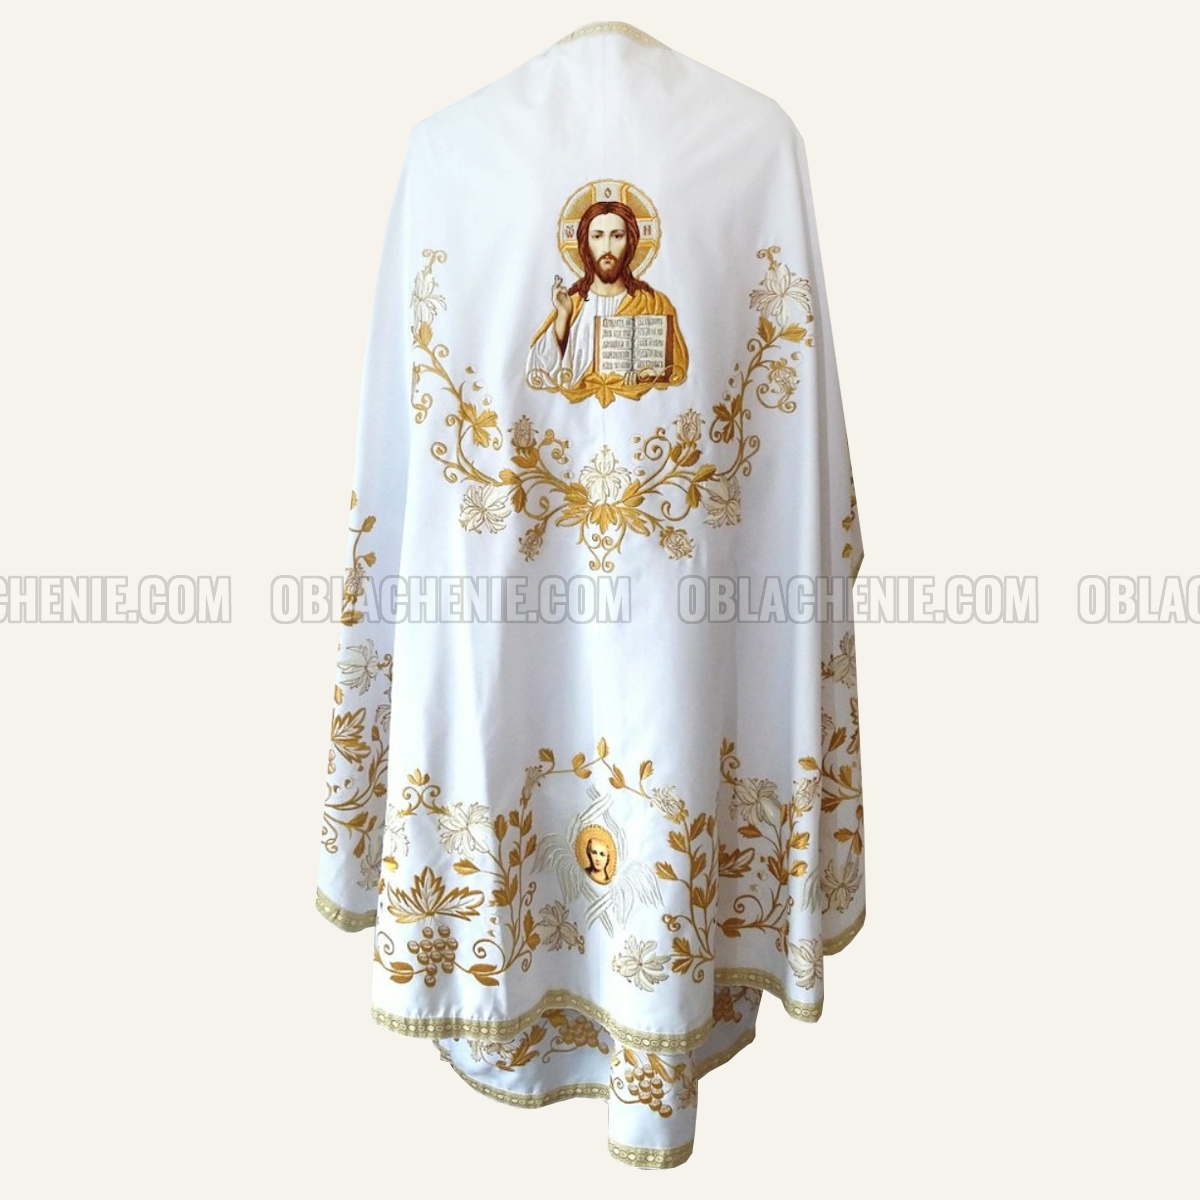 Embroidered priest's vestments 10248